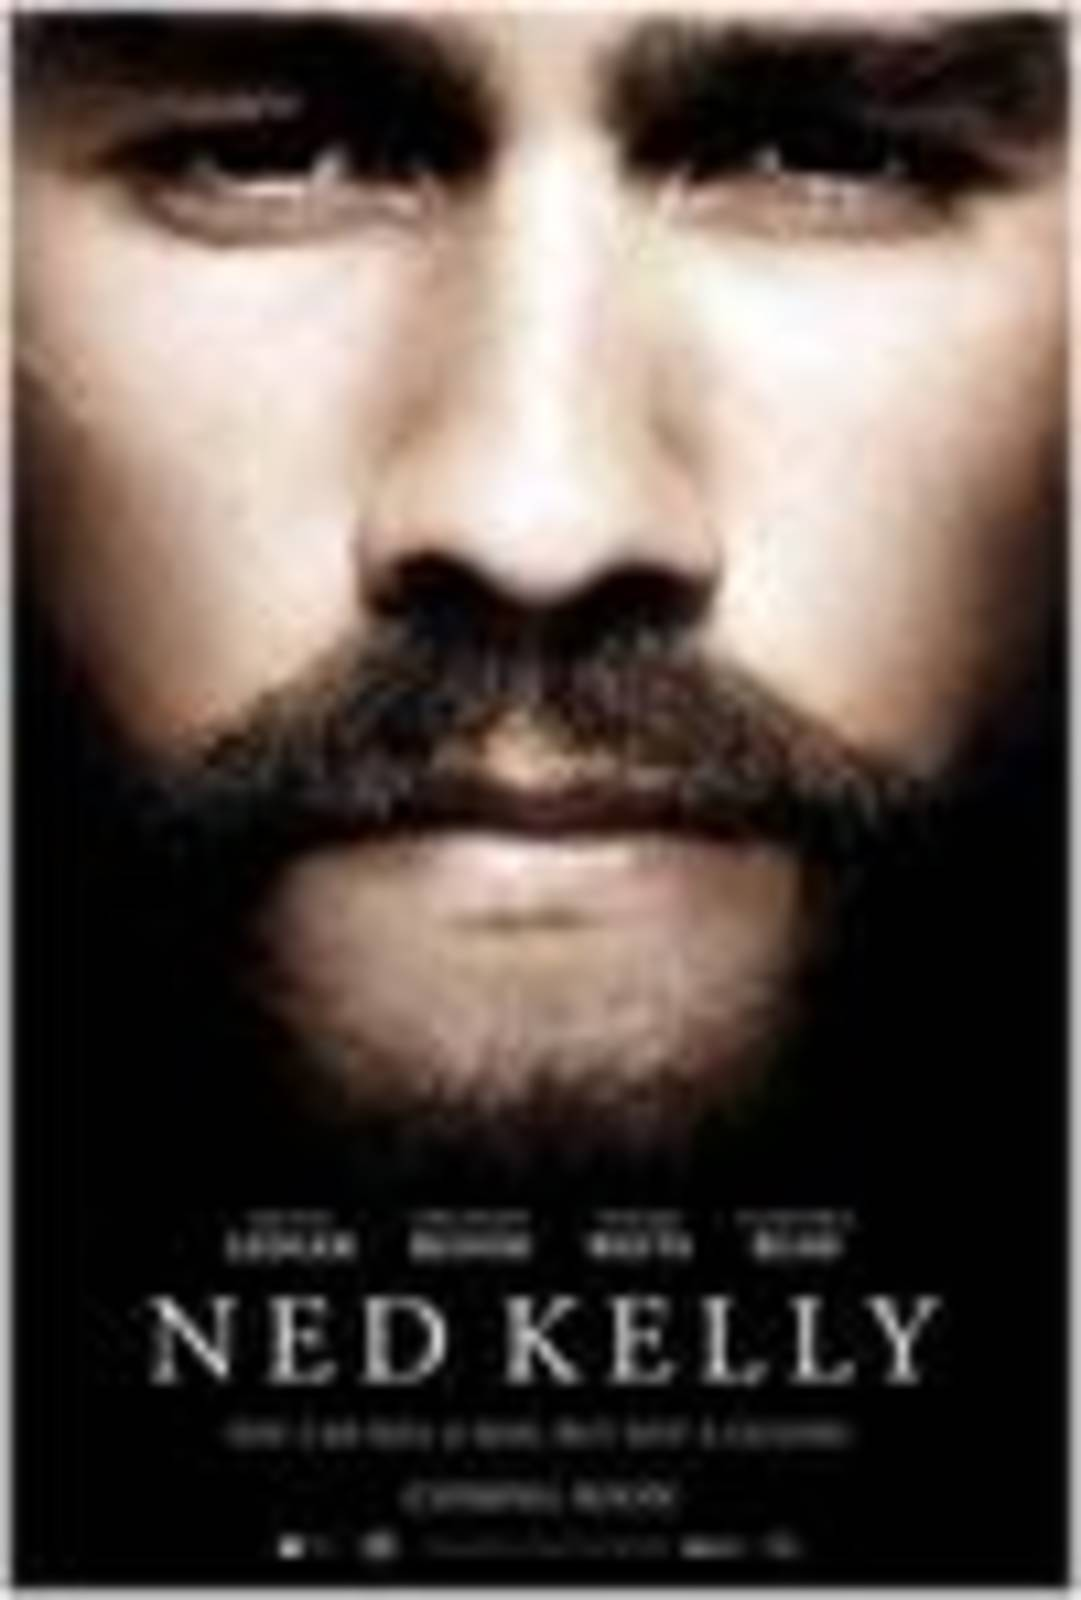 film ned kelly cineman. Black Bedroom Furniture Sets. Home Design Ideas